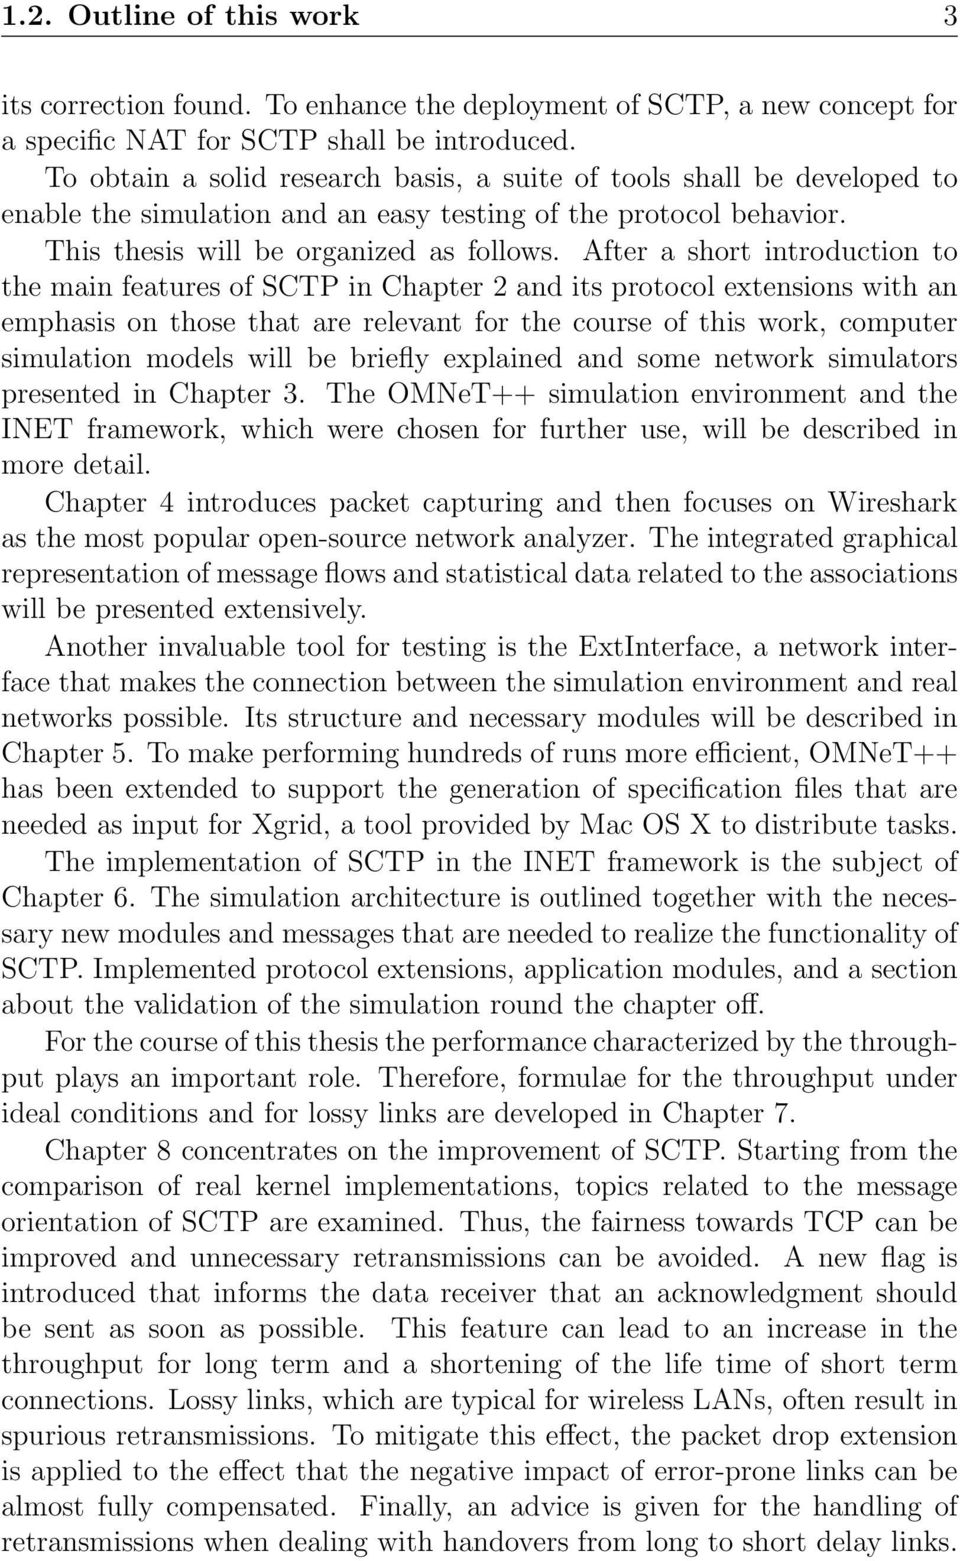 After a short introduction to the main features of SCTP in Chapter 2 and its protocol extensions with an emphasis on those that are relevant for the course of this work, computer simulation models